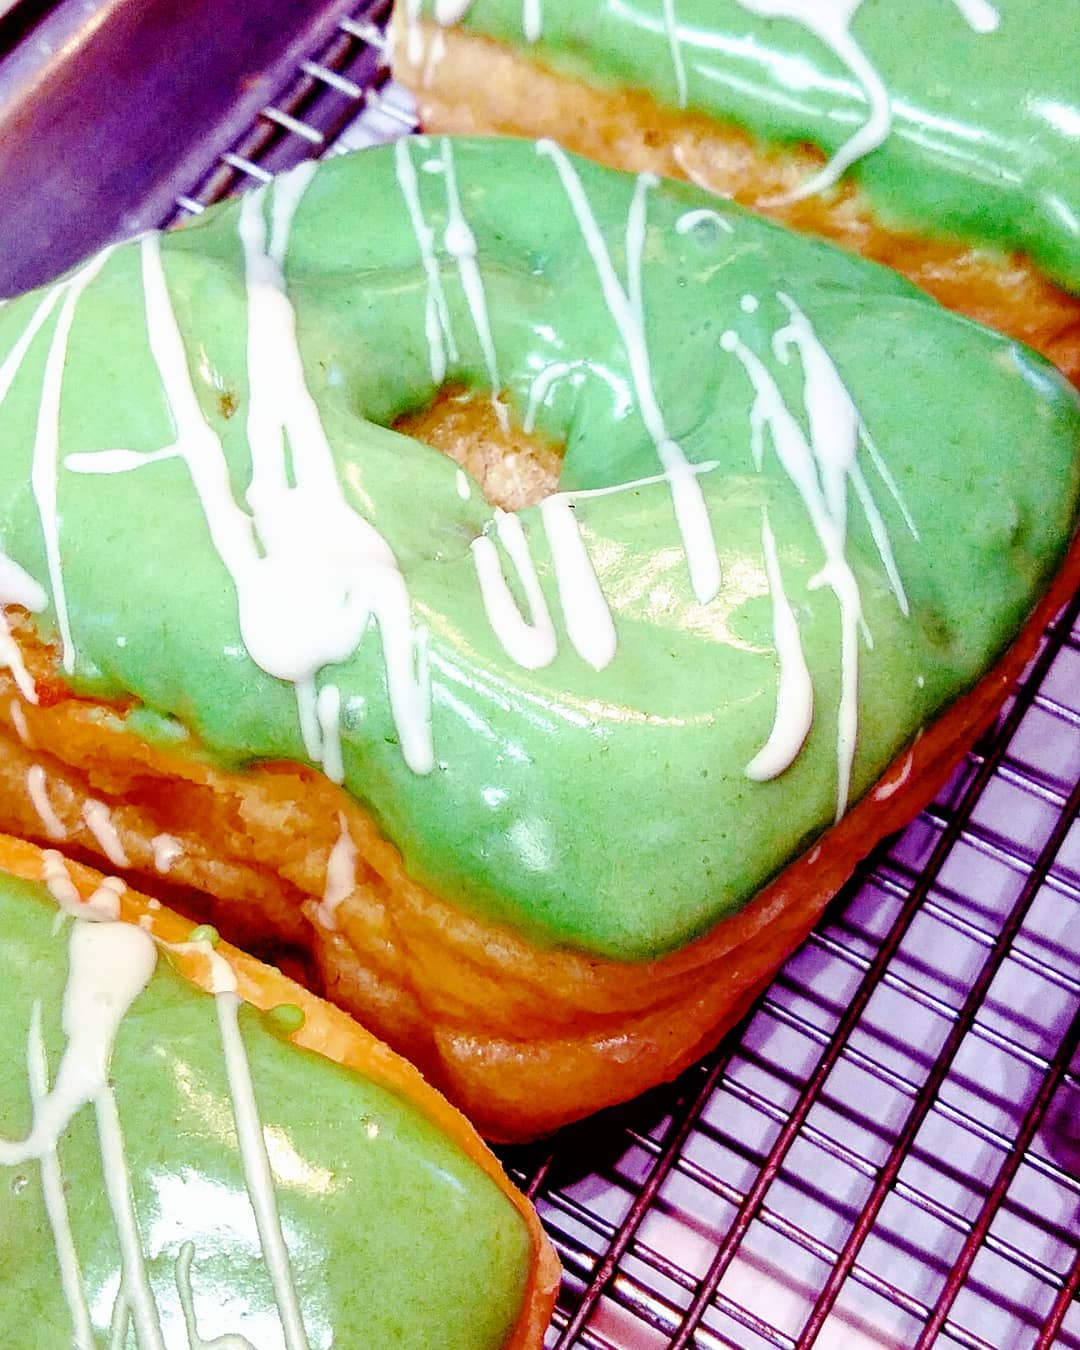 Yup. The SHENANIGANS Doughnut. Green App